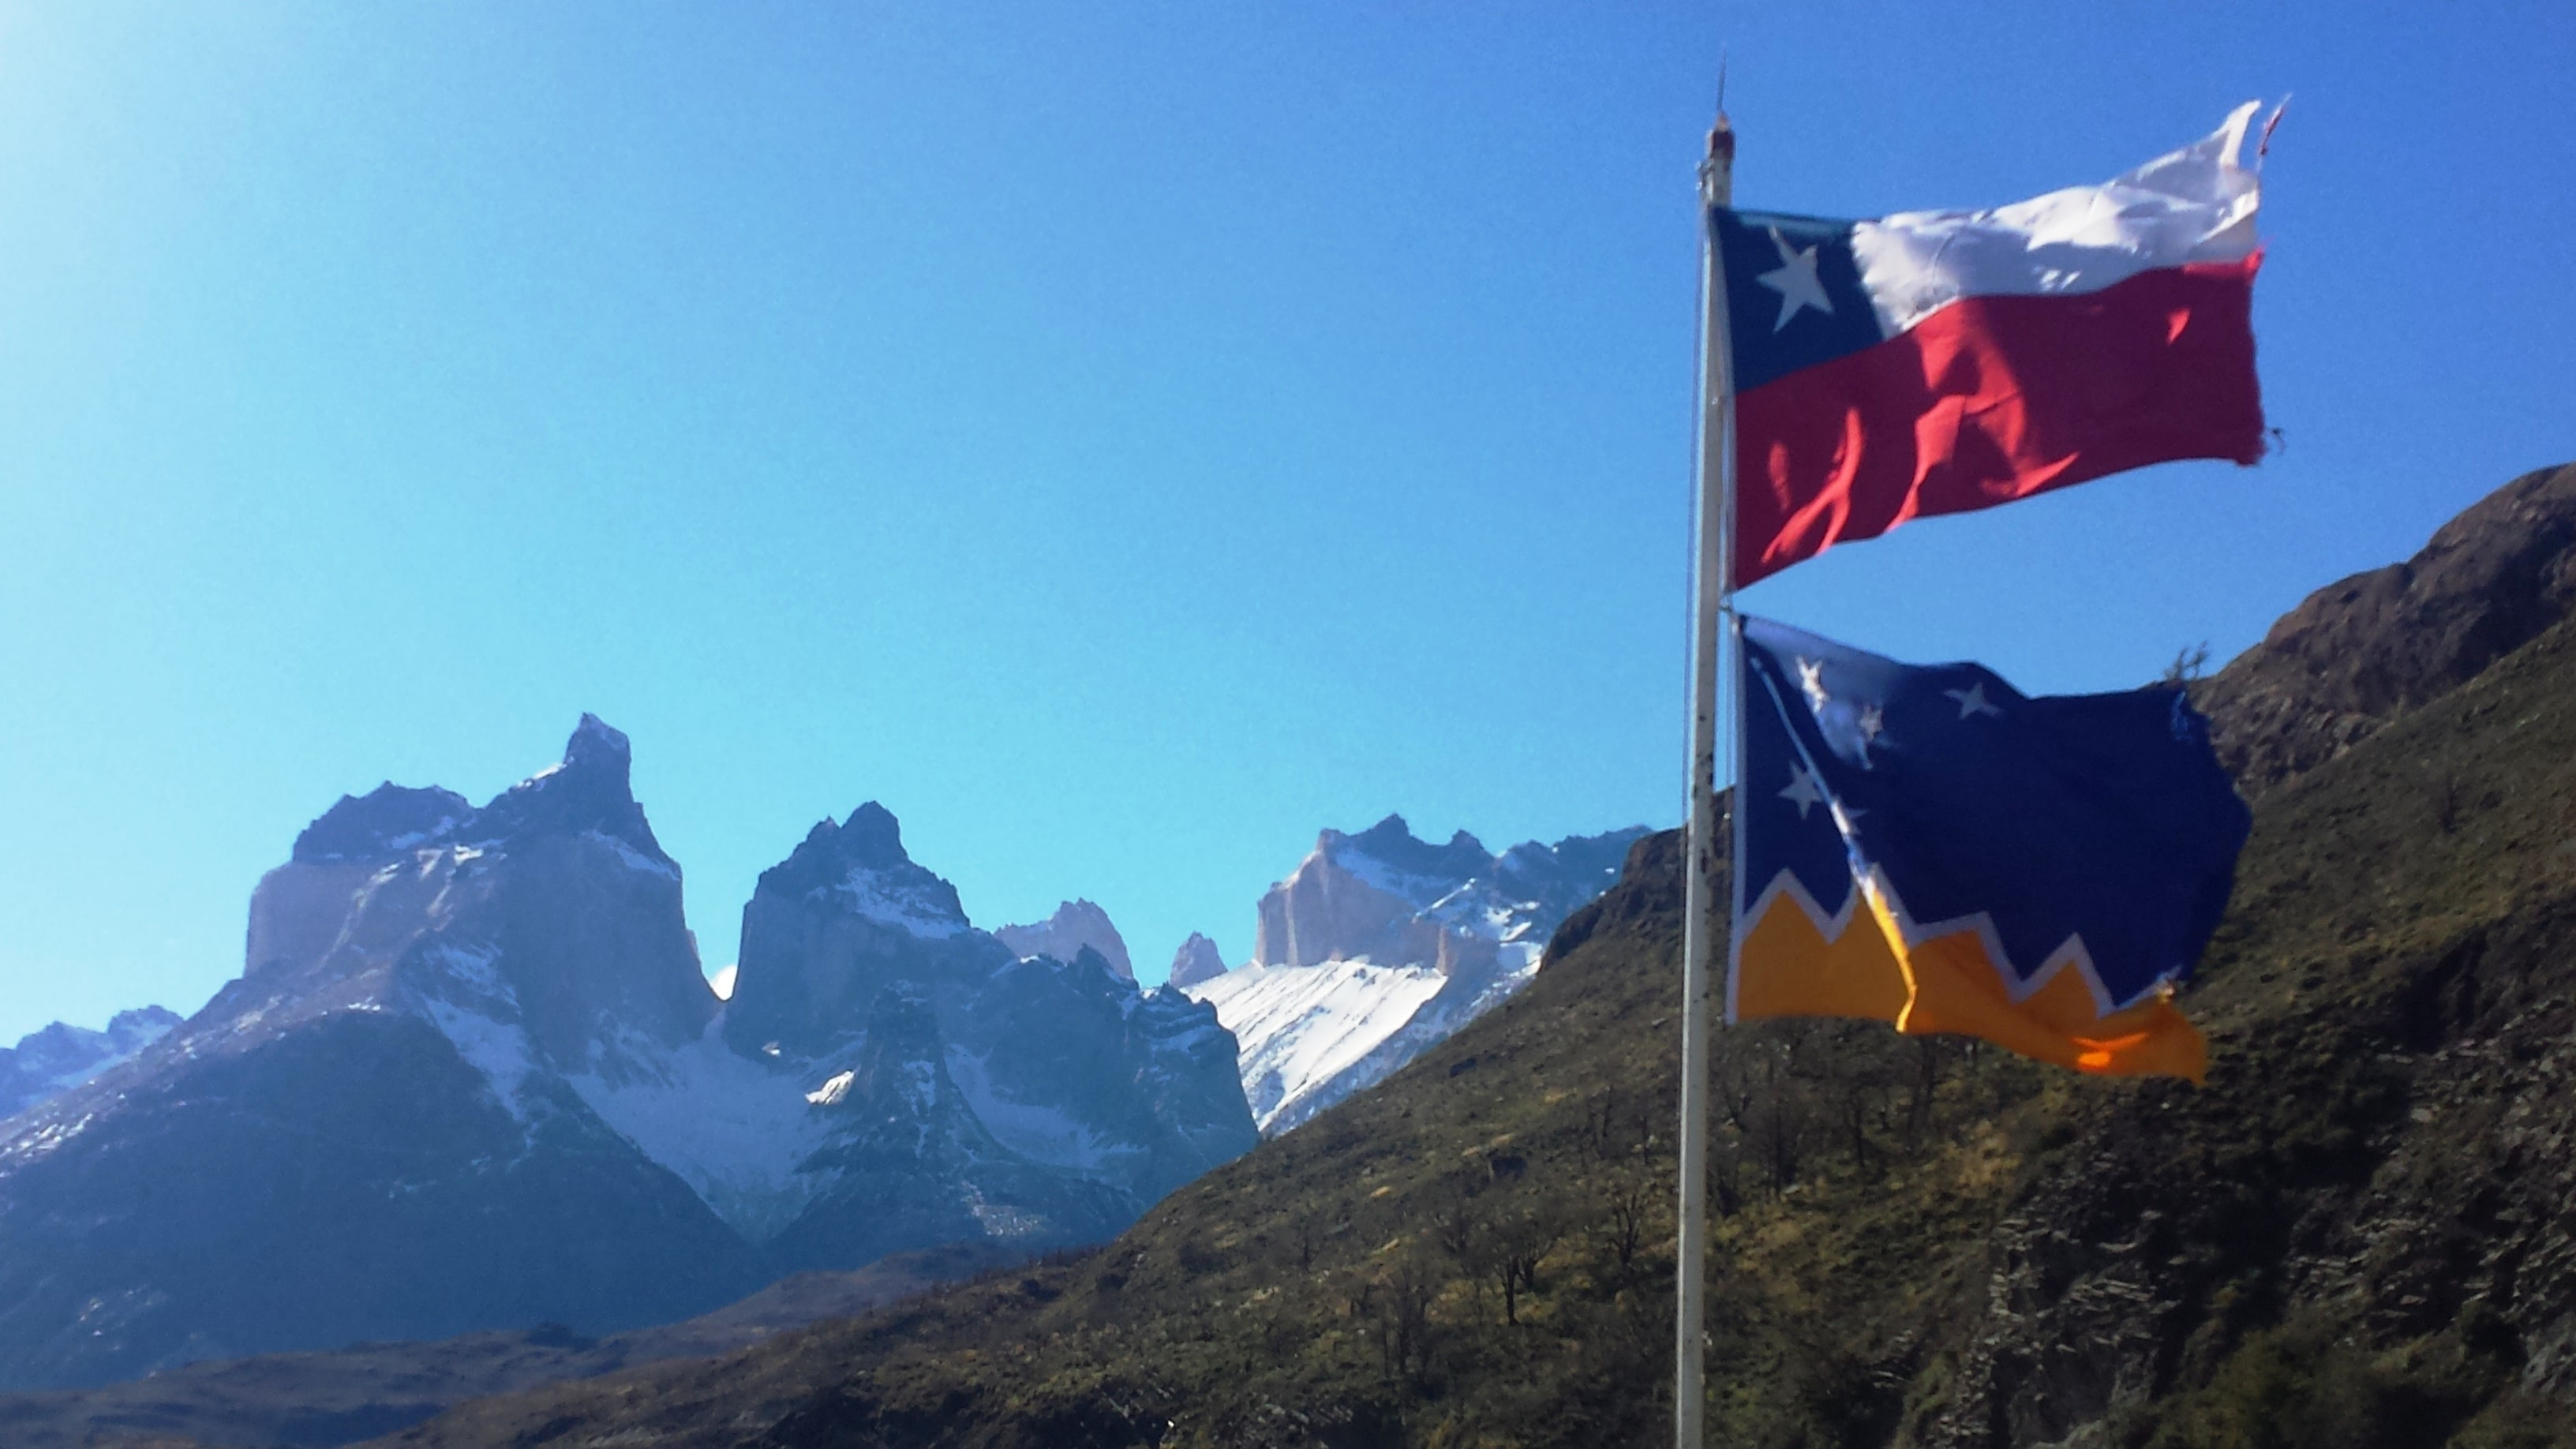 Torres del Paine voted 8th Wonder of the World